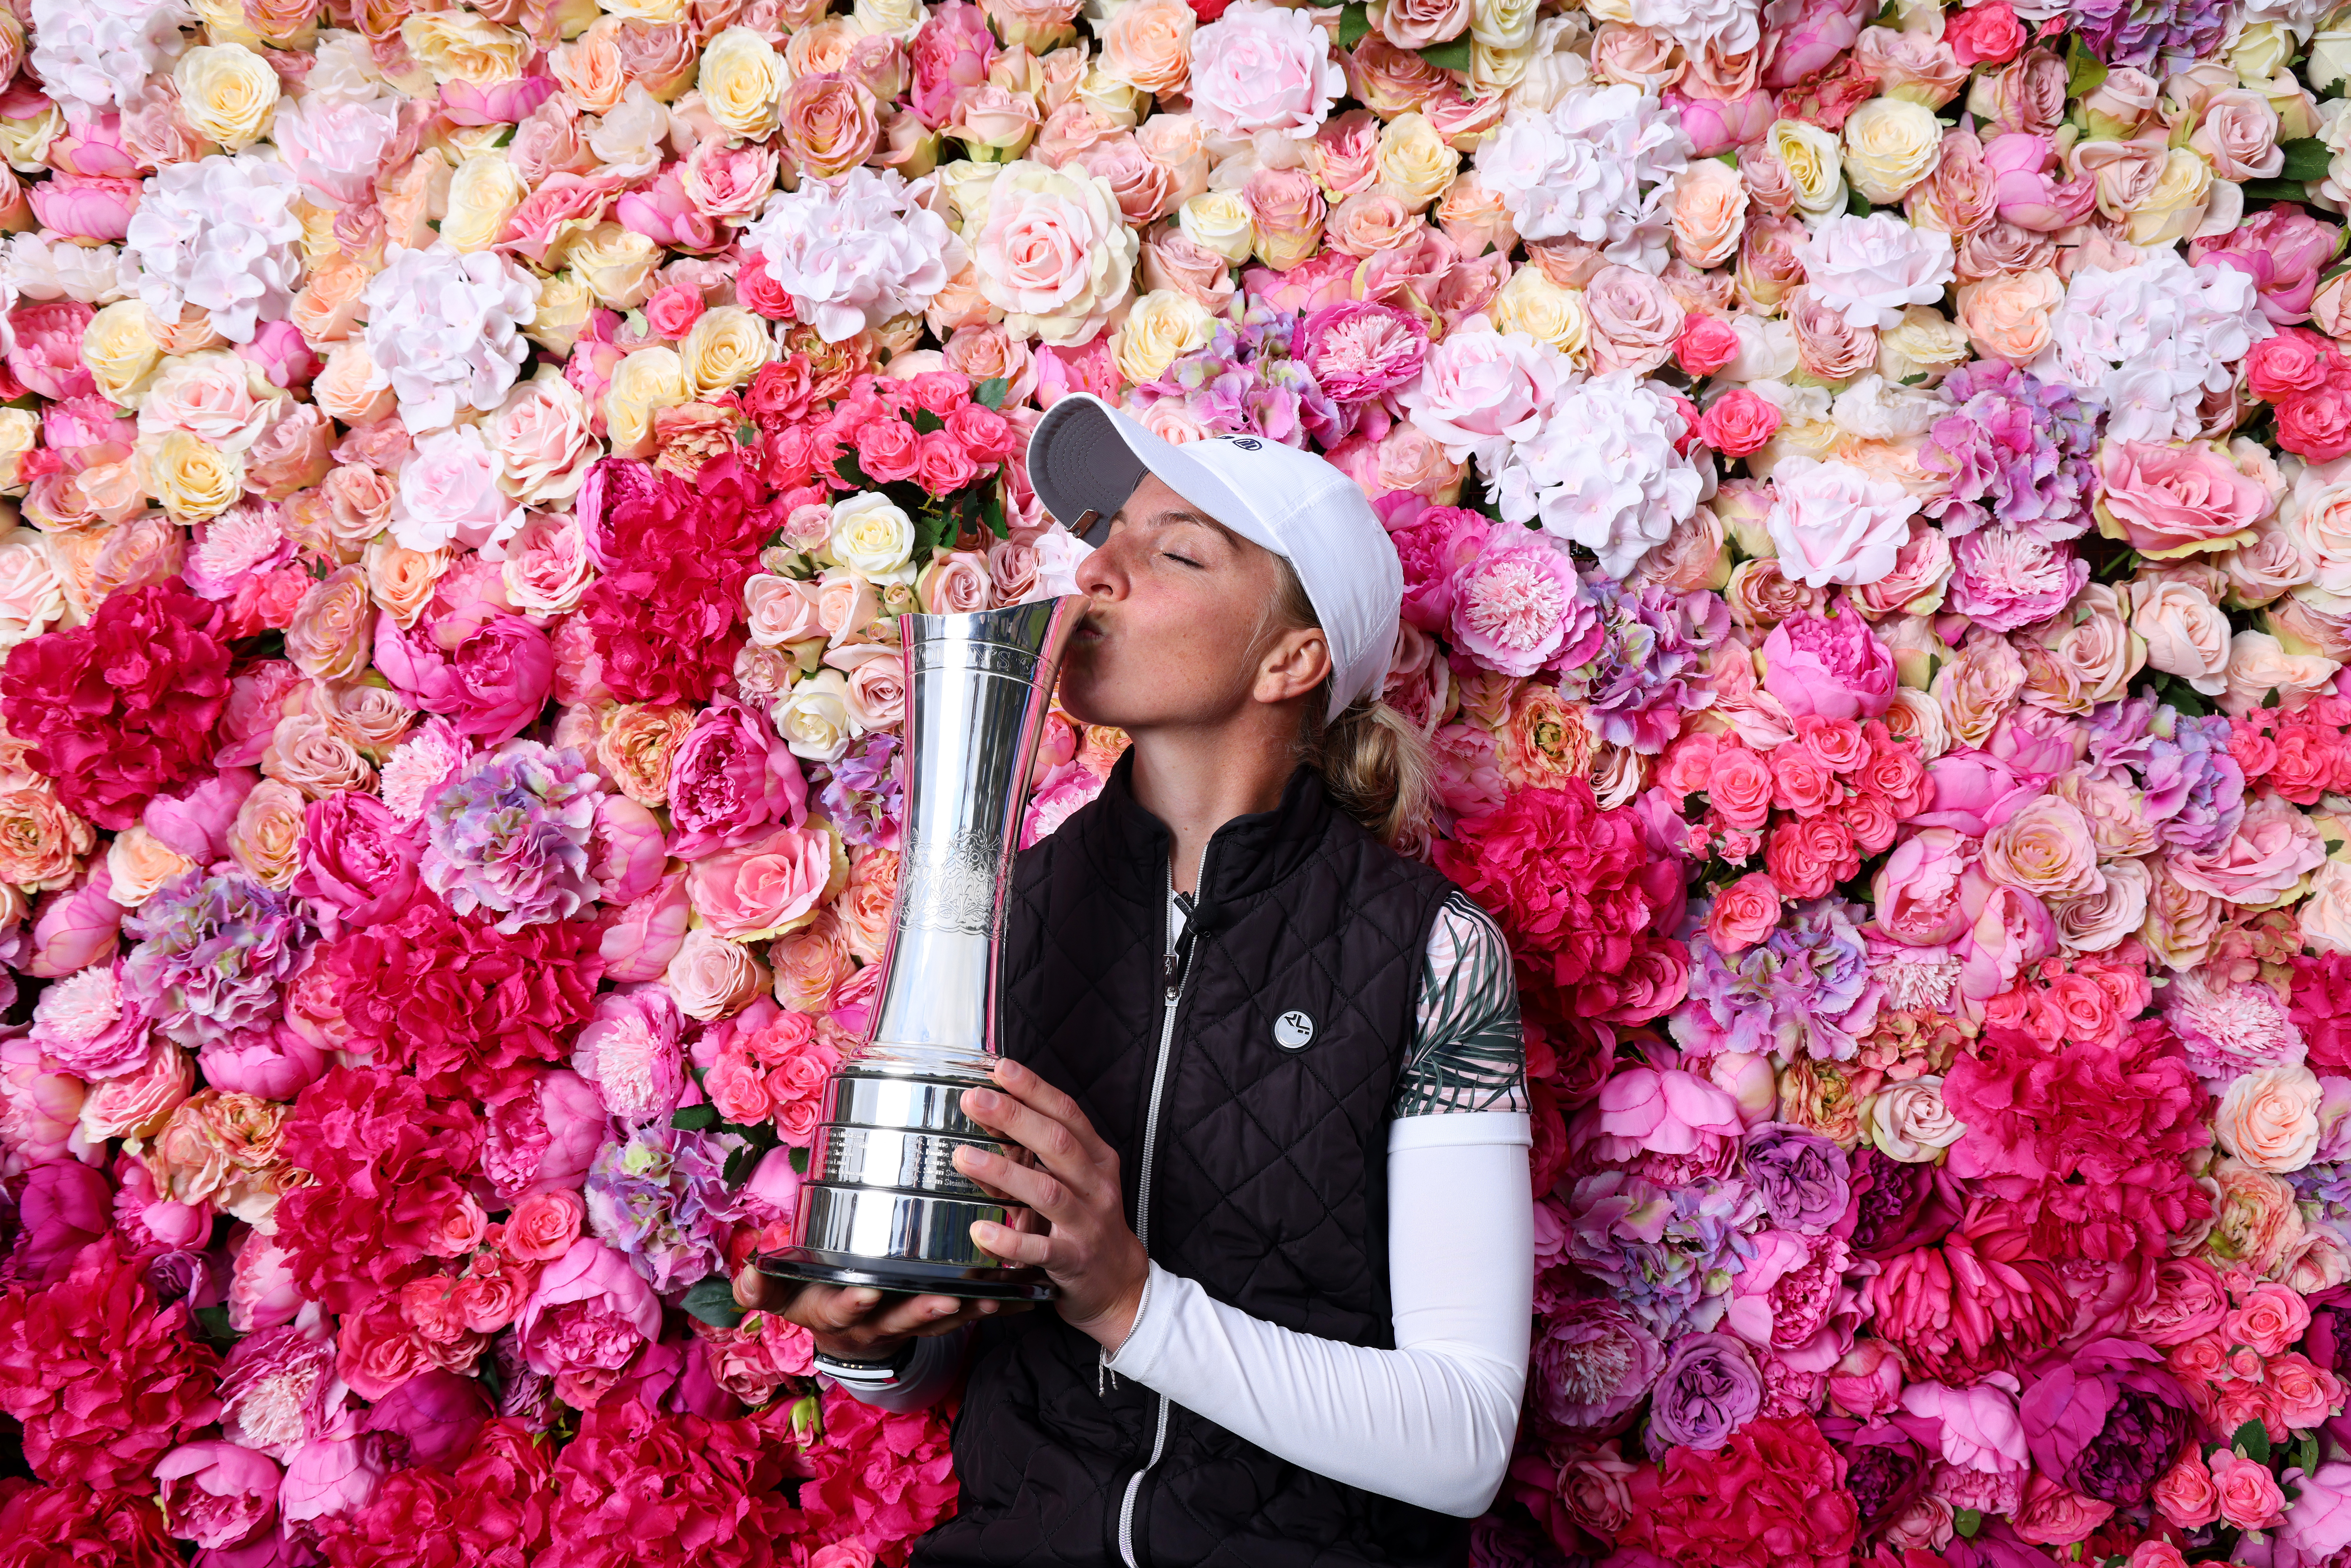 TROON, SCOTLAND - AUGUST 23: SophiaPopov of Germany kisses the trophy following victory in the final round on Day Four of the 2020 AIG Women's Open at Royal Troon on August 23, 2020 in Troon, Scotland. (Photo by Richard Heathcote/R&A/R&A via Getty Images)